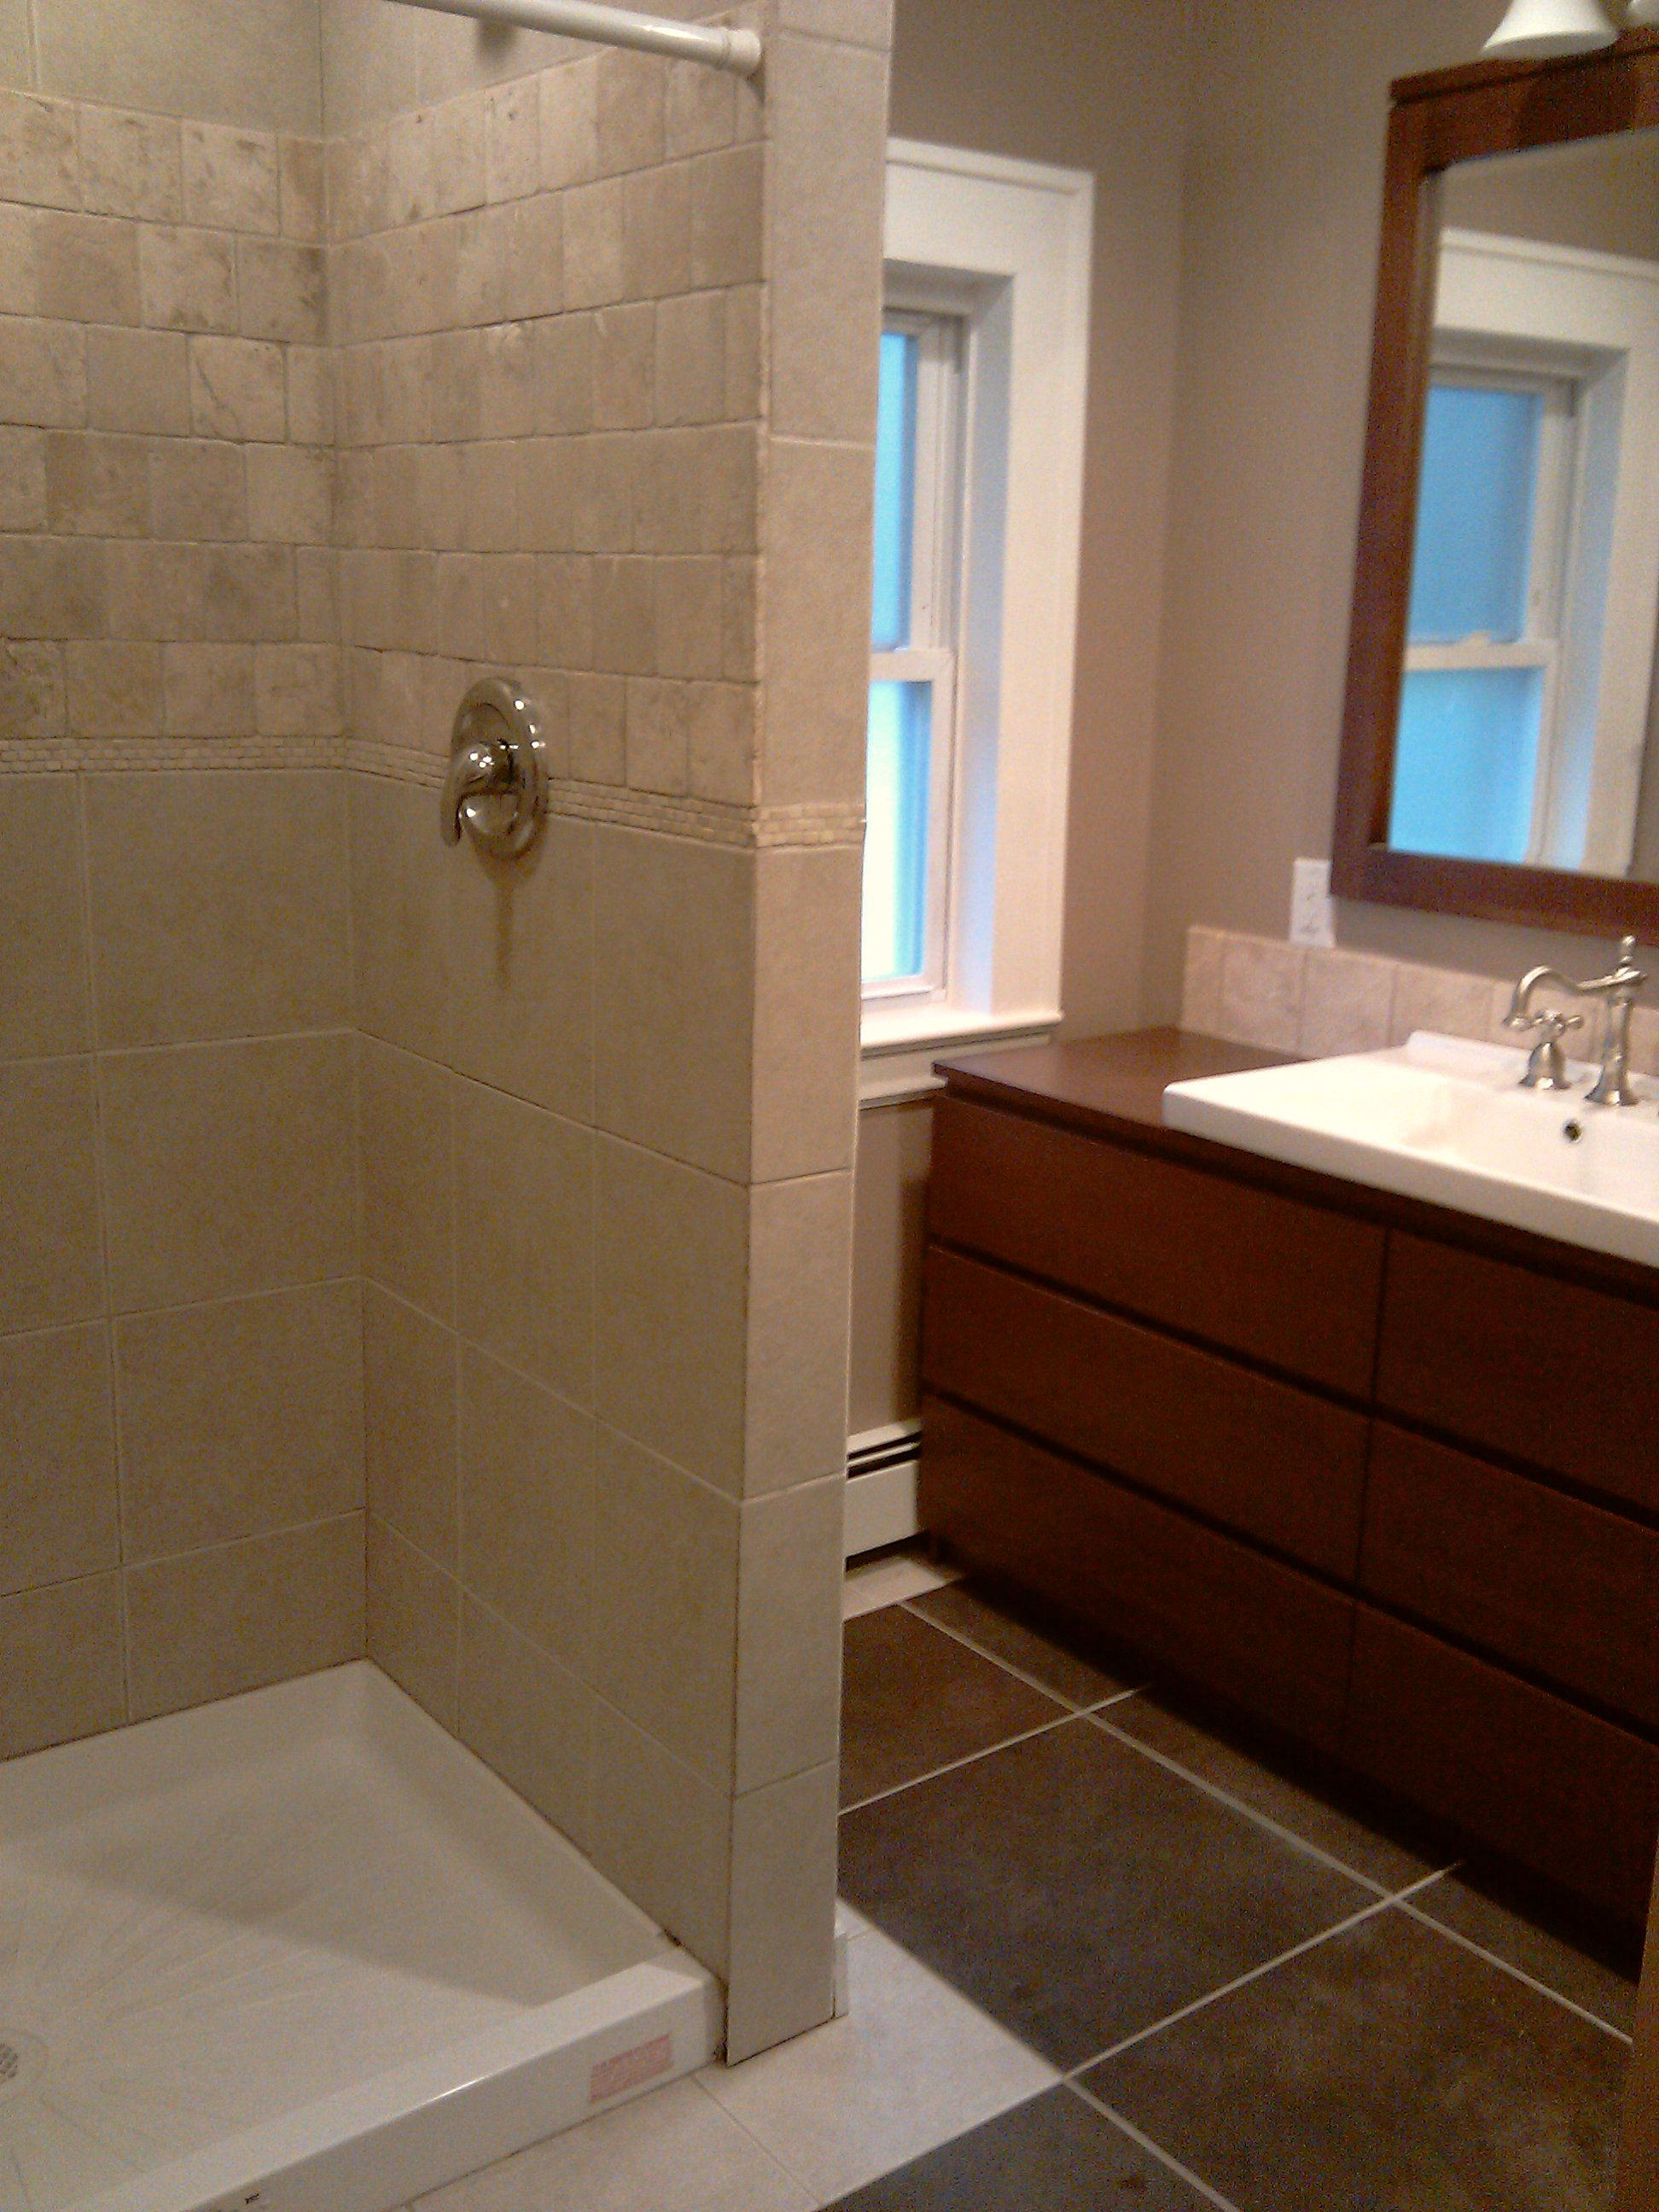 Remodeling Bathroom Stand Up Shower a stand up shower | diy | pinterest | bath, basements and dream